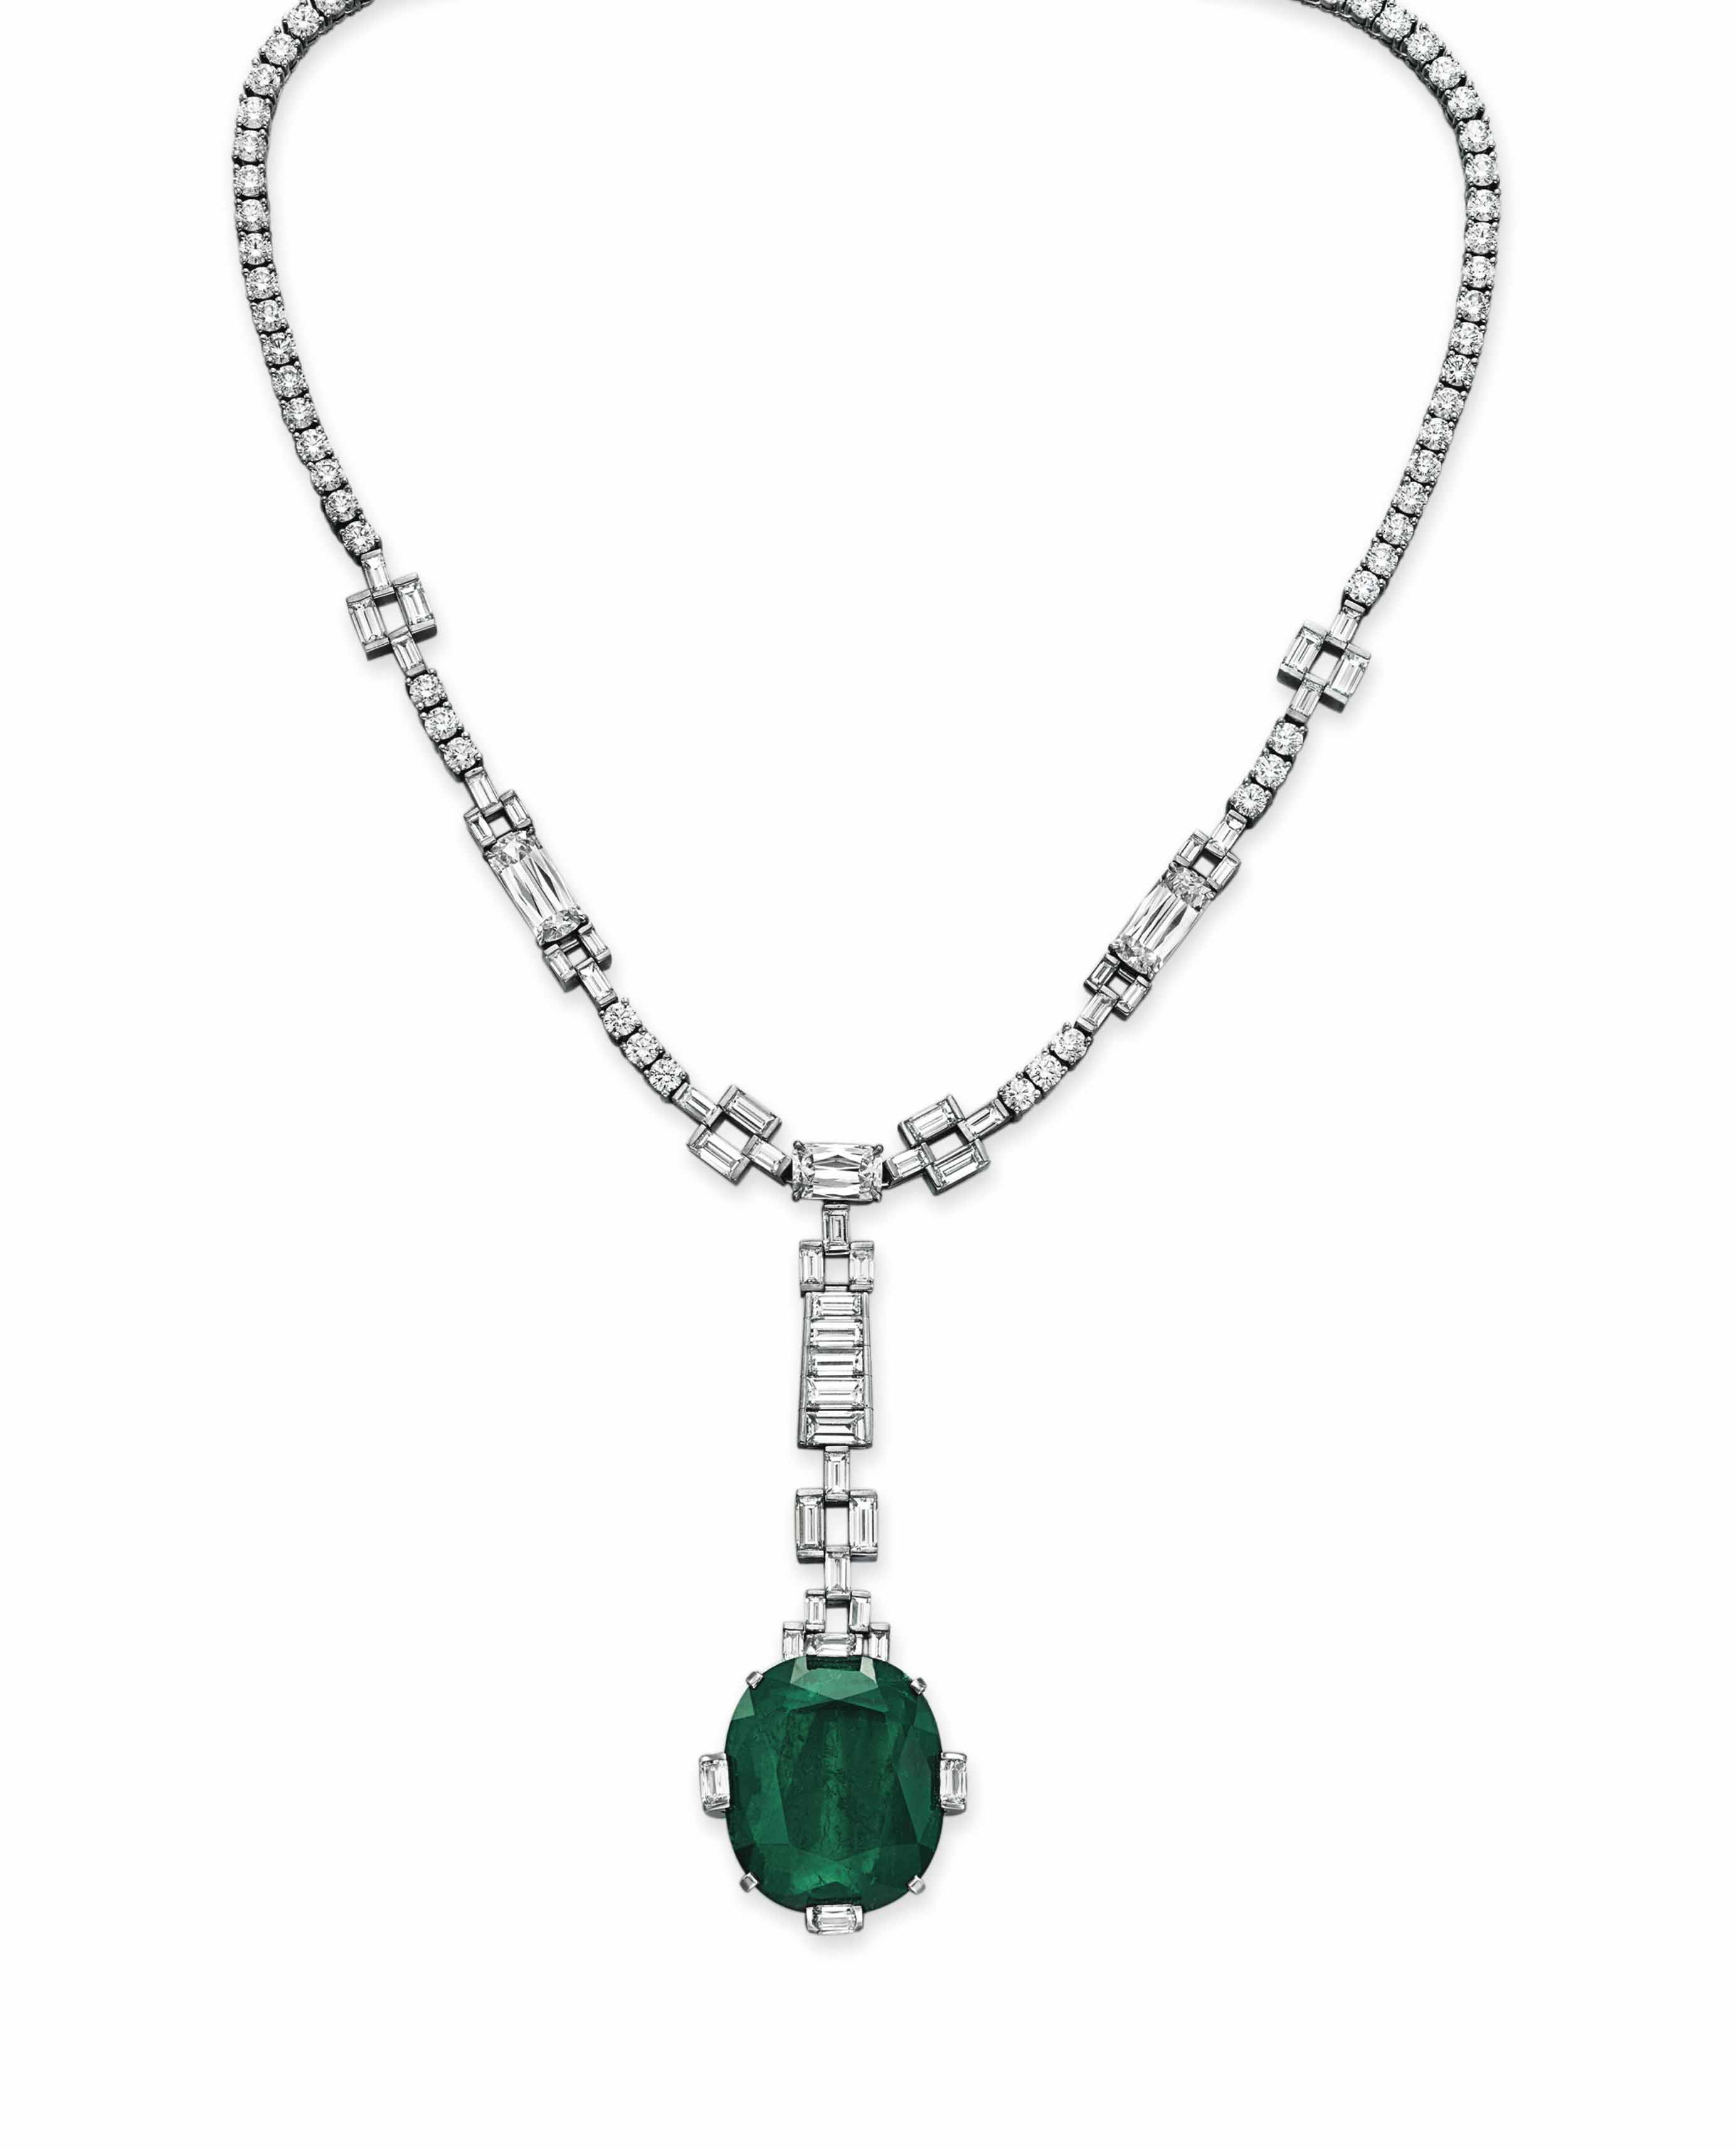 AN EMERALD AND DIAMOND PENDANT NECKLACE, BY WILLIAM GOLDBERG